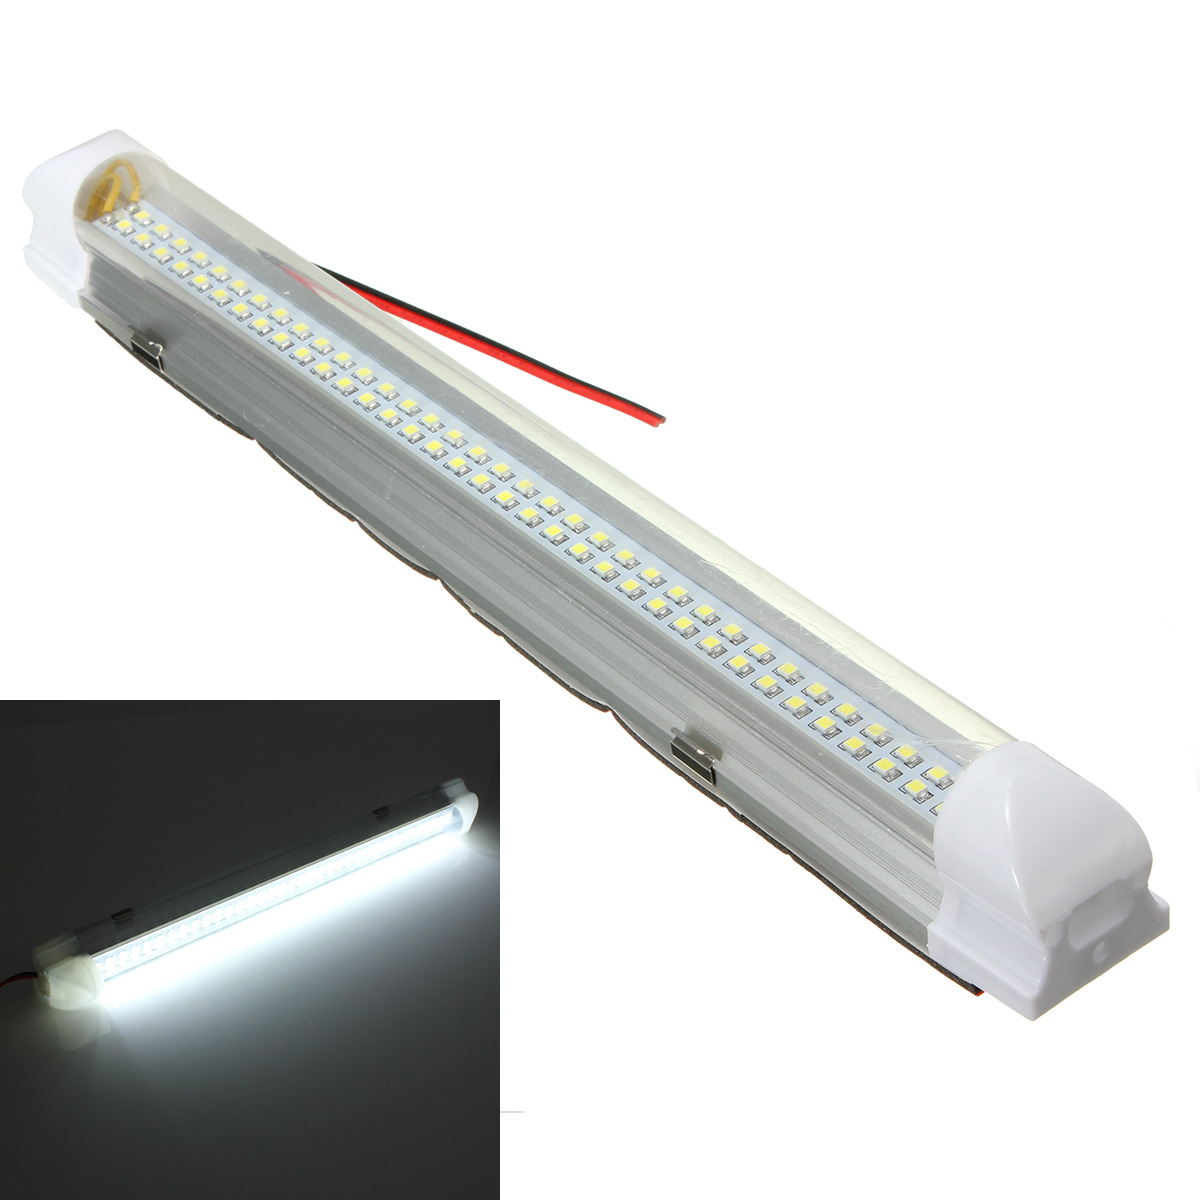 Universal Car Auto Caravan Interior 72 LED White Light Strip Lamp ON/OFF Switch car styling for mazda cx 5 taillight assembly 2011 2015 cx5 led tail light new cx 5 led rear lamp drl brake with hid kit 2pcs